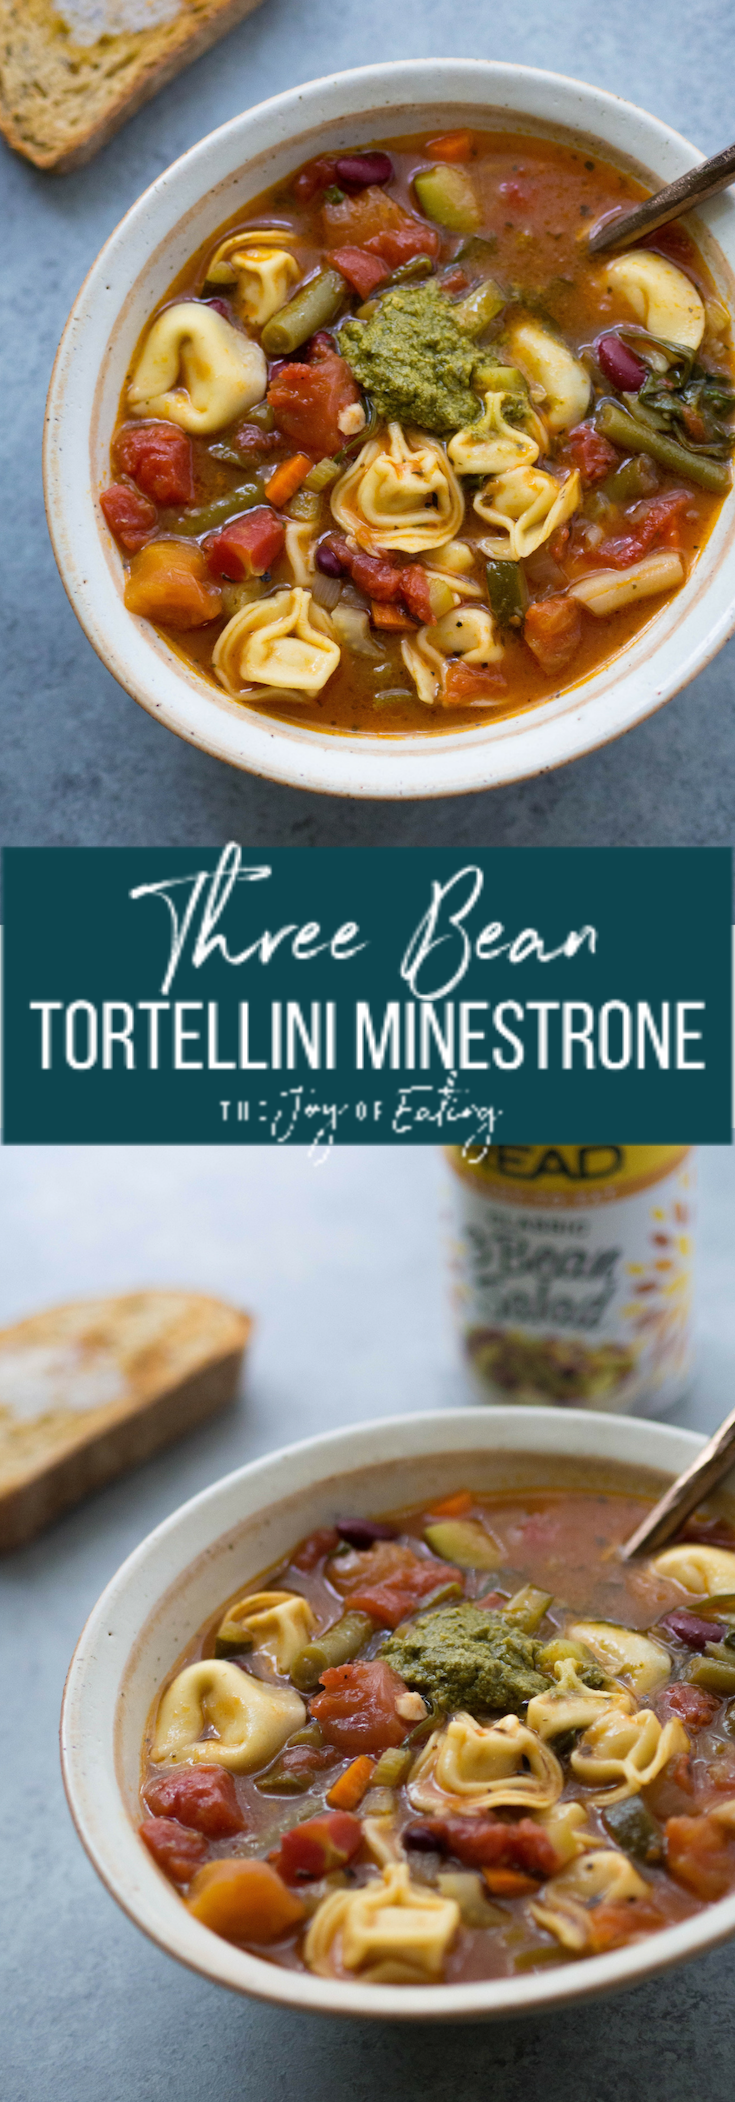 This Three Bean Tortellini Minestrone tastes like it's been simmering all day, but you can make it in just over 30 minutes! #soup #tortellini #minestrone #minestronesoup #vegetarian #healthydinner